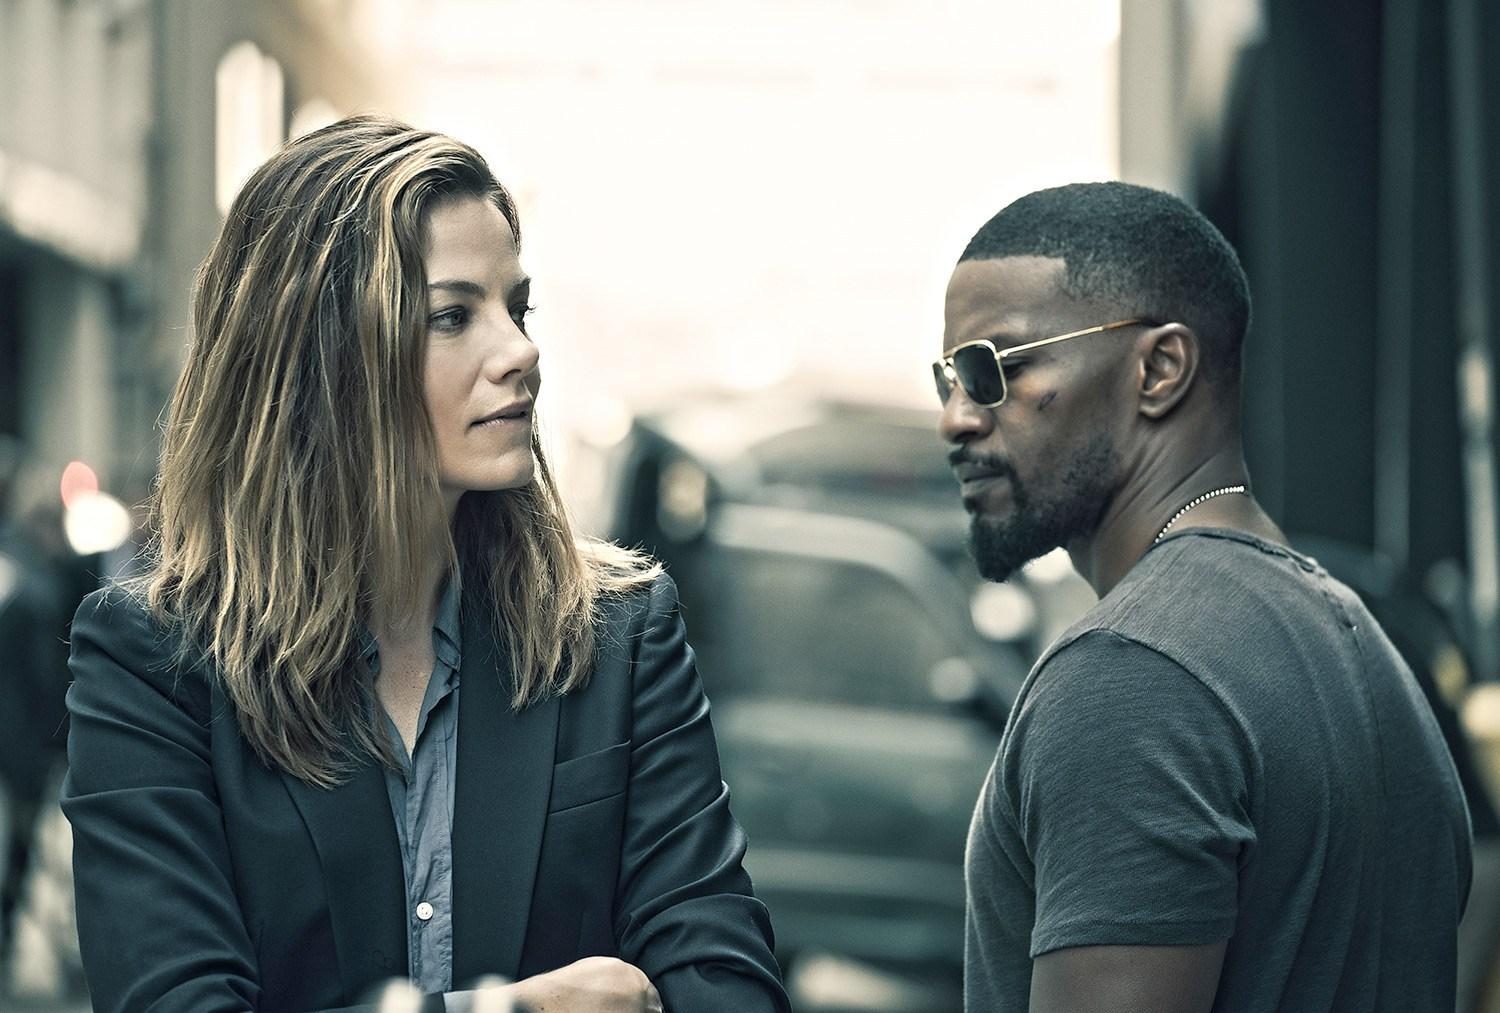 Michelle Monaghan and Jamie Fox stand next to each other in a street